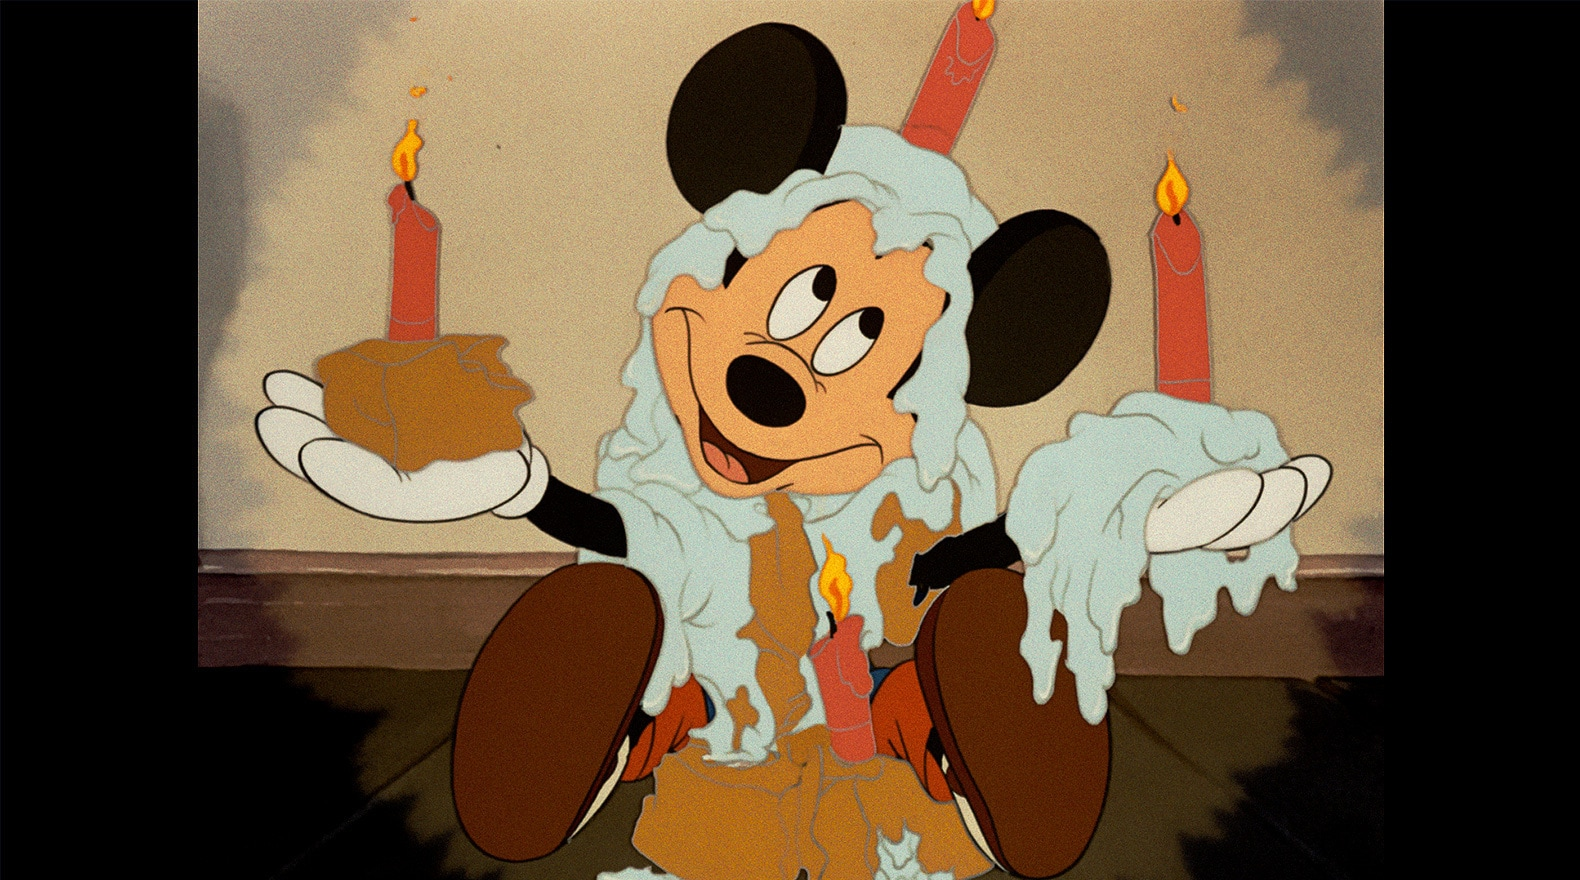 Mickey celebrates his day with a little cake and candles.